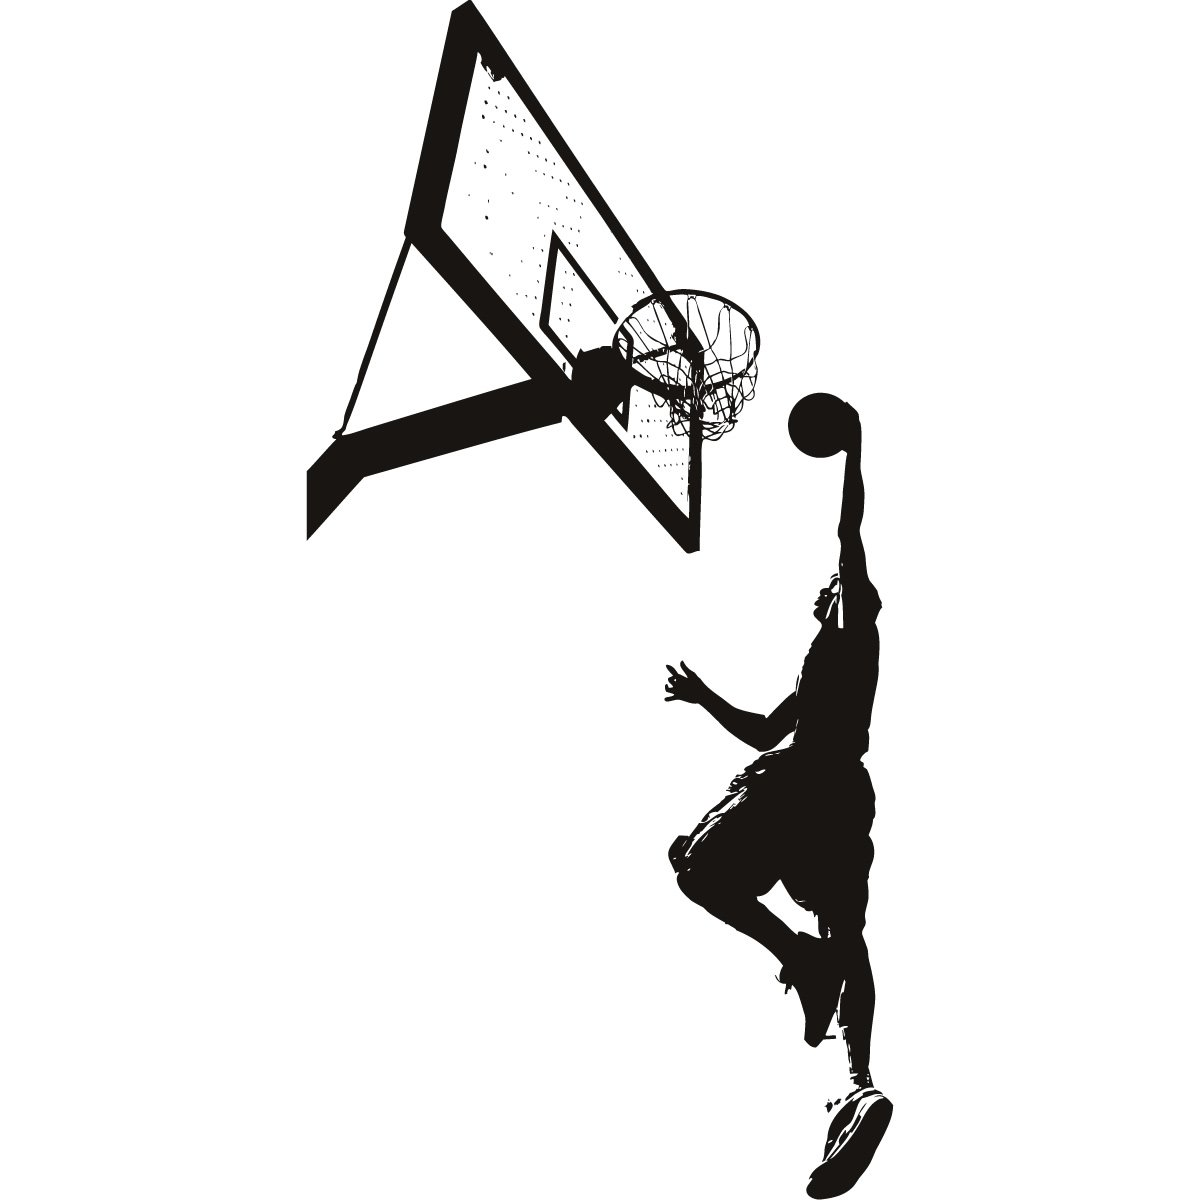 Basketball Slam Dunk Clip Art.